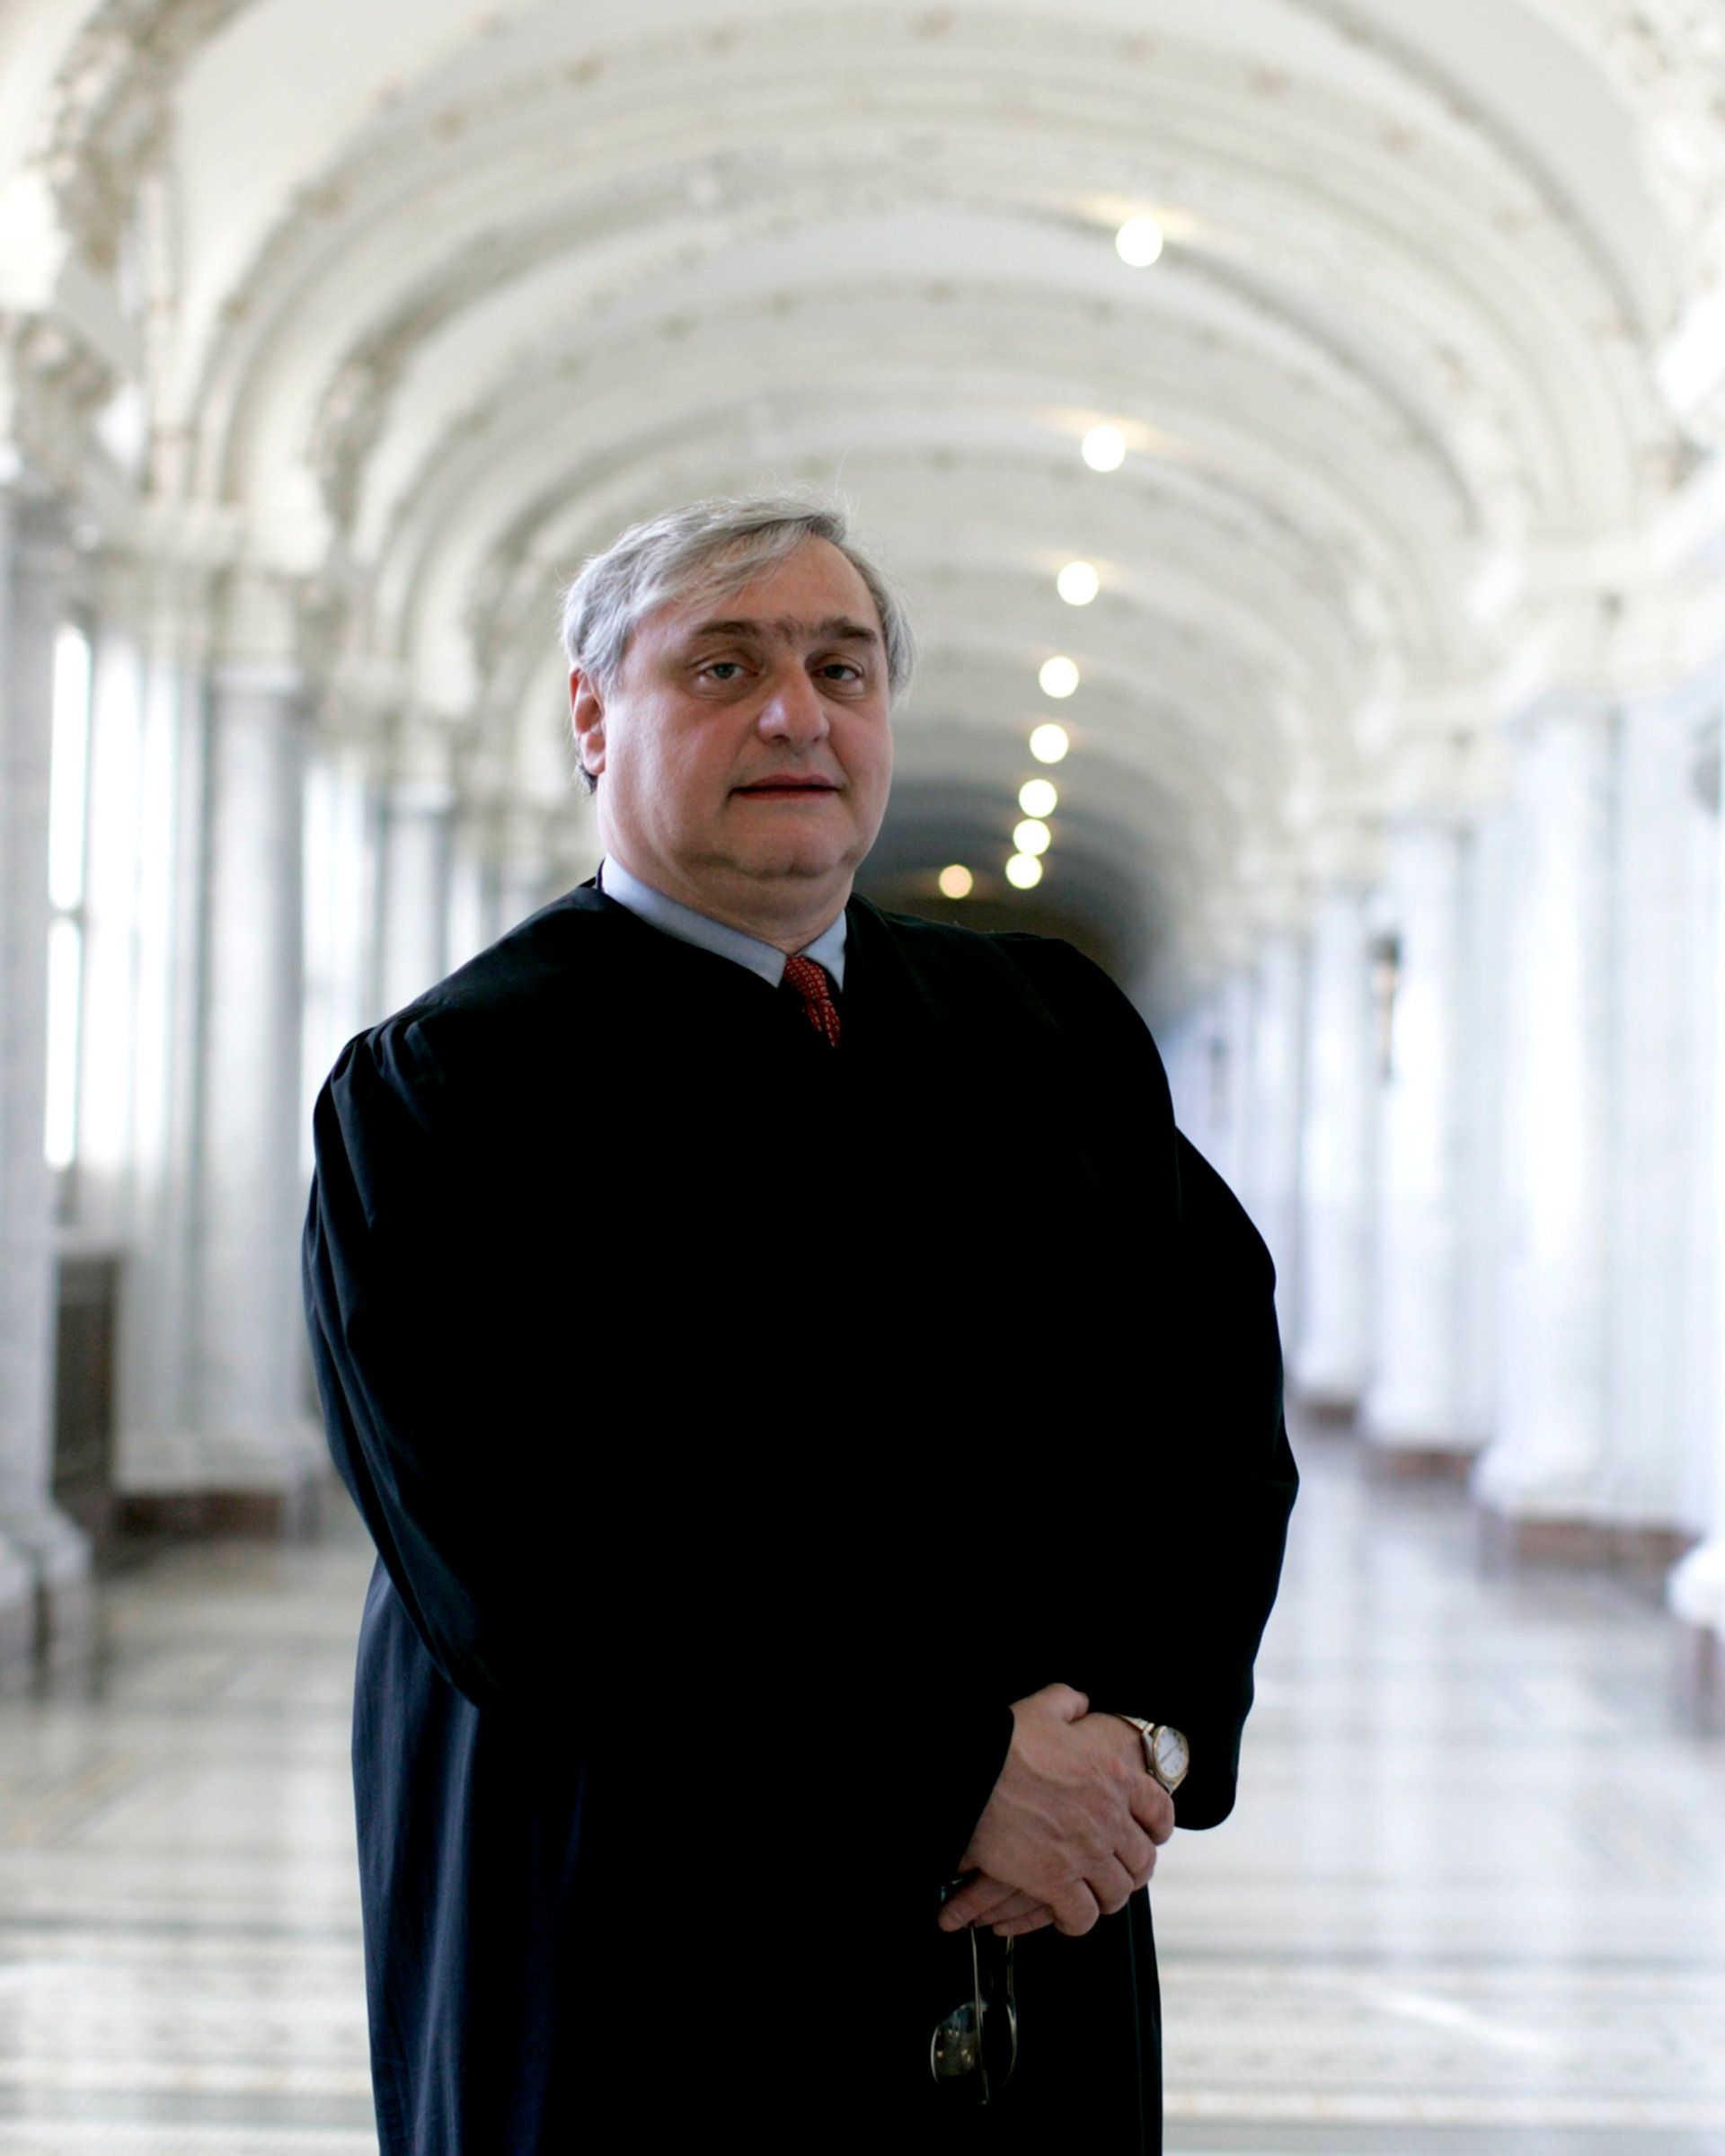 Judge Alex Kozinski resigns after accusations of sexual abuse